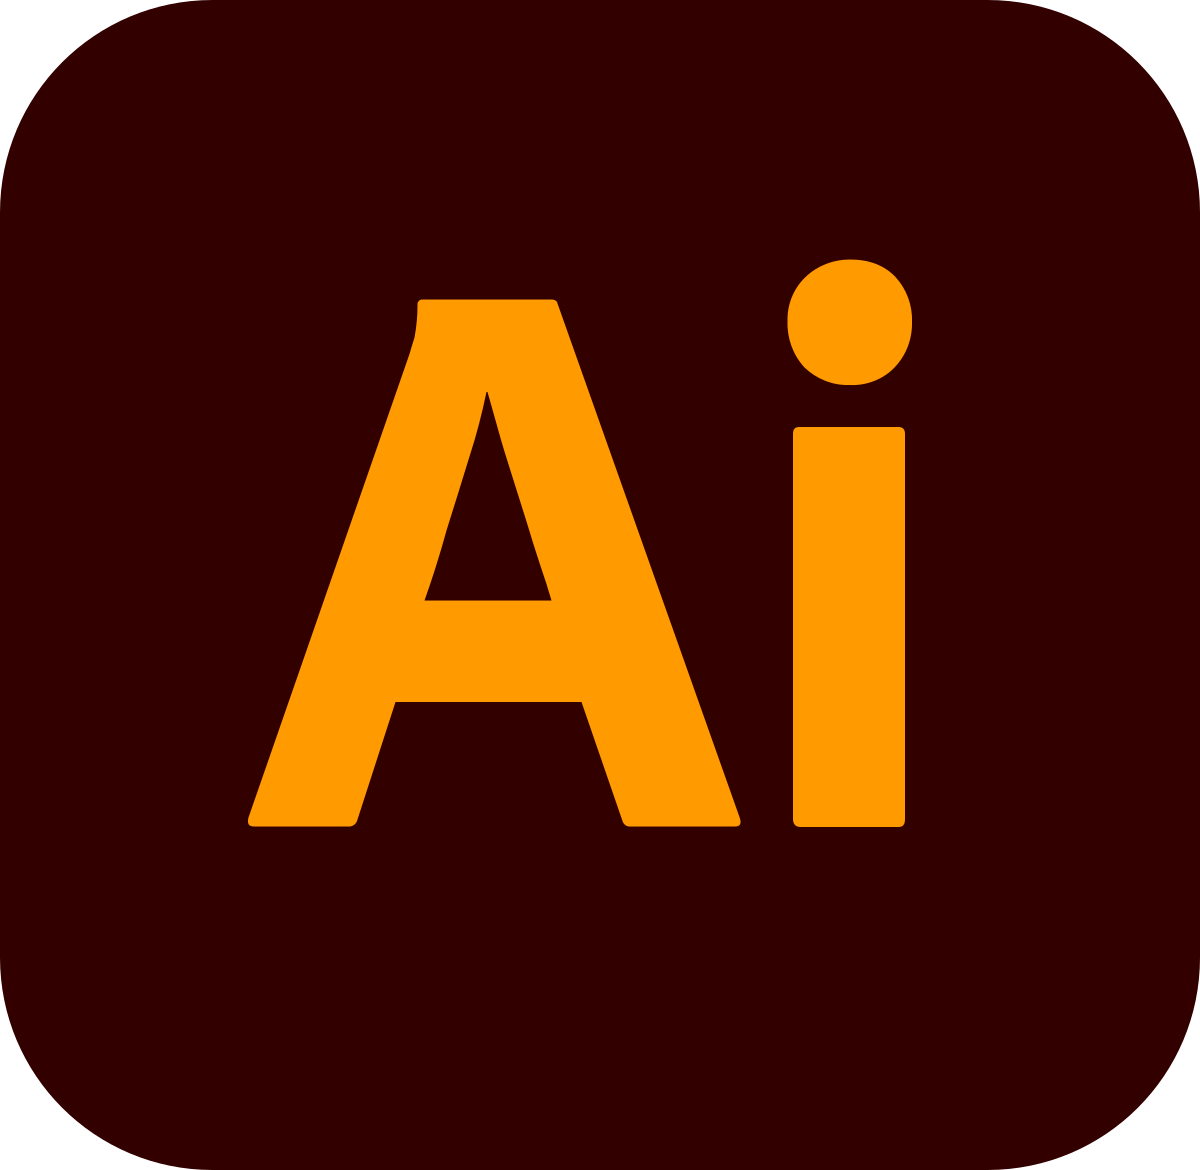 Adobe Illustrator CC 2021 v25.1.0.90 Full version